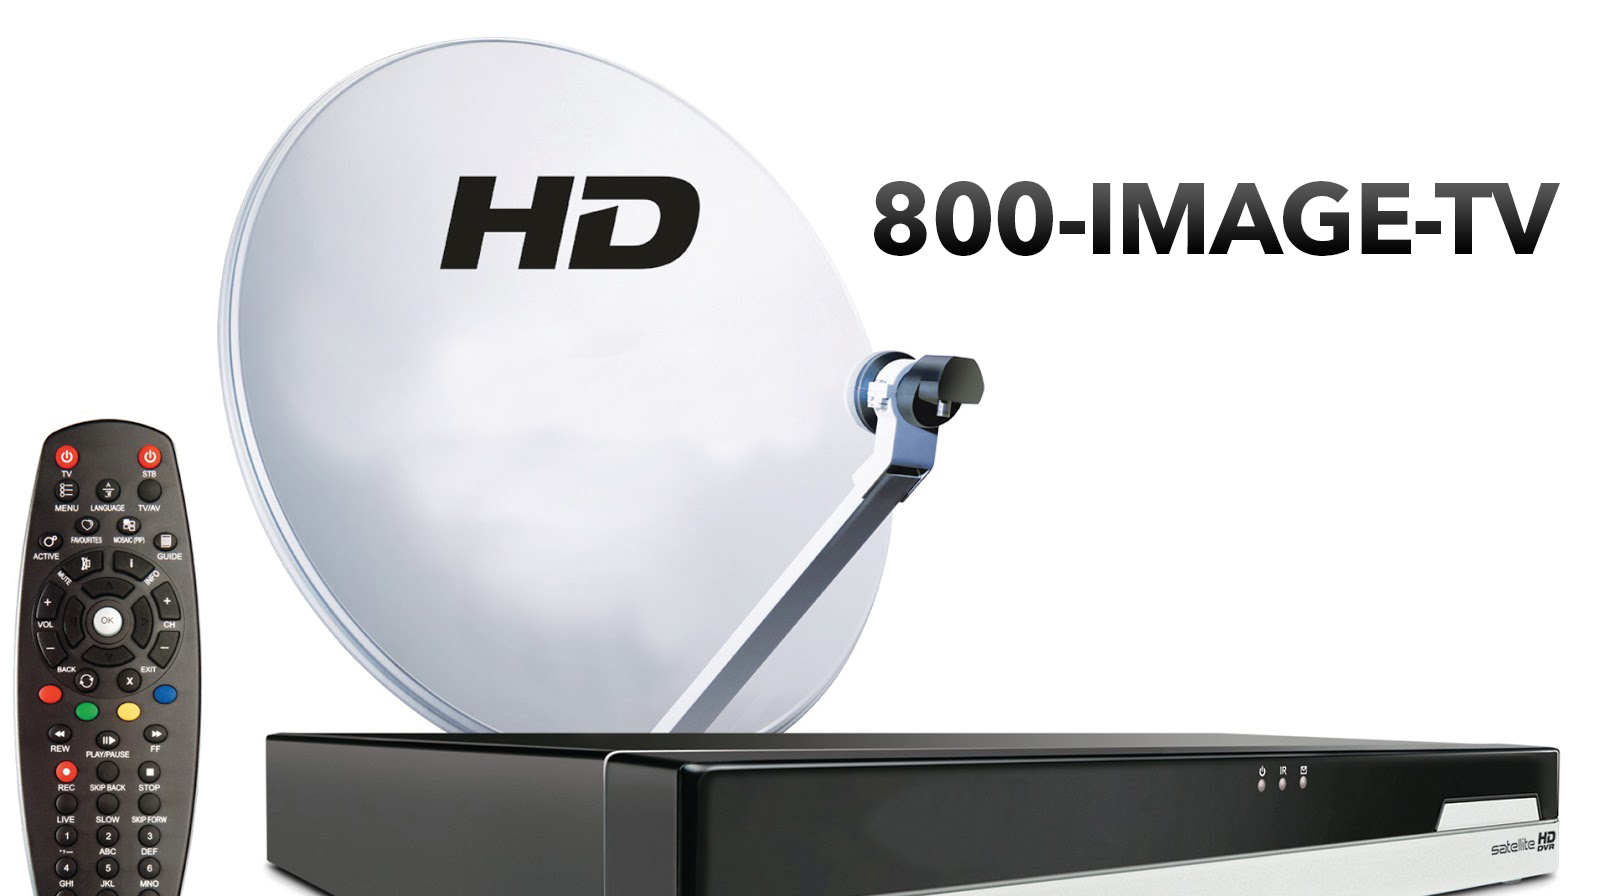 TV Satellite and remote control using 1-800-IMAGE-TV